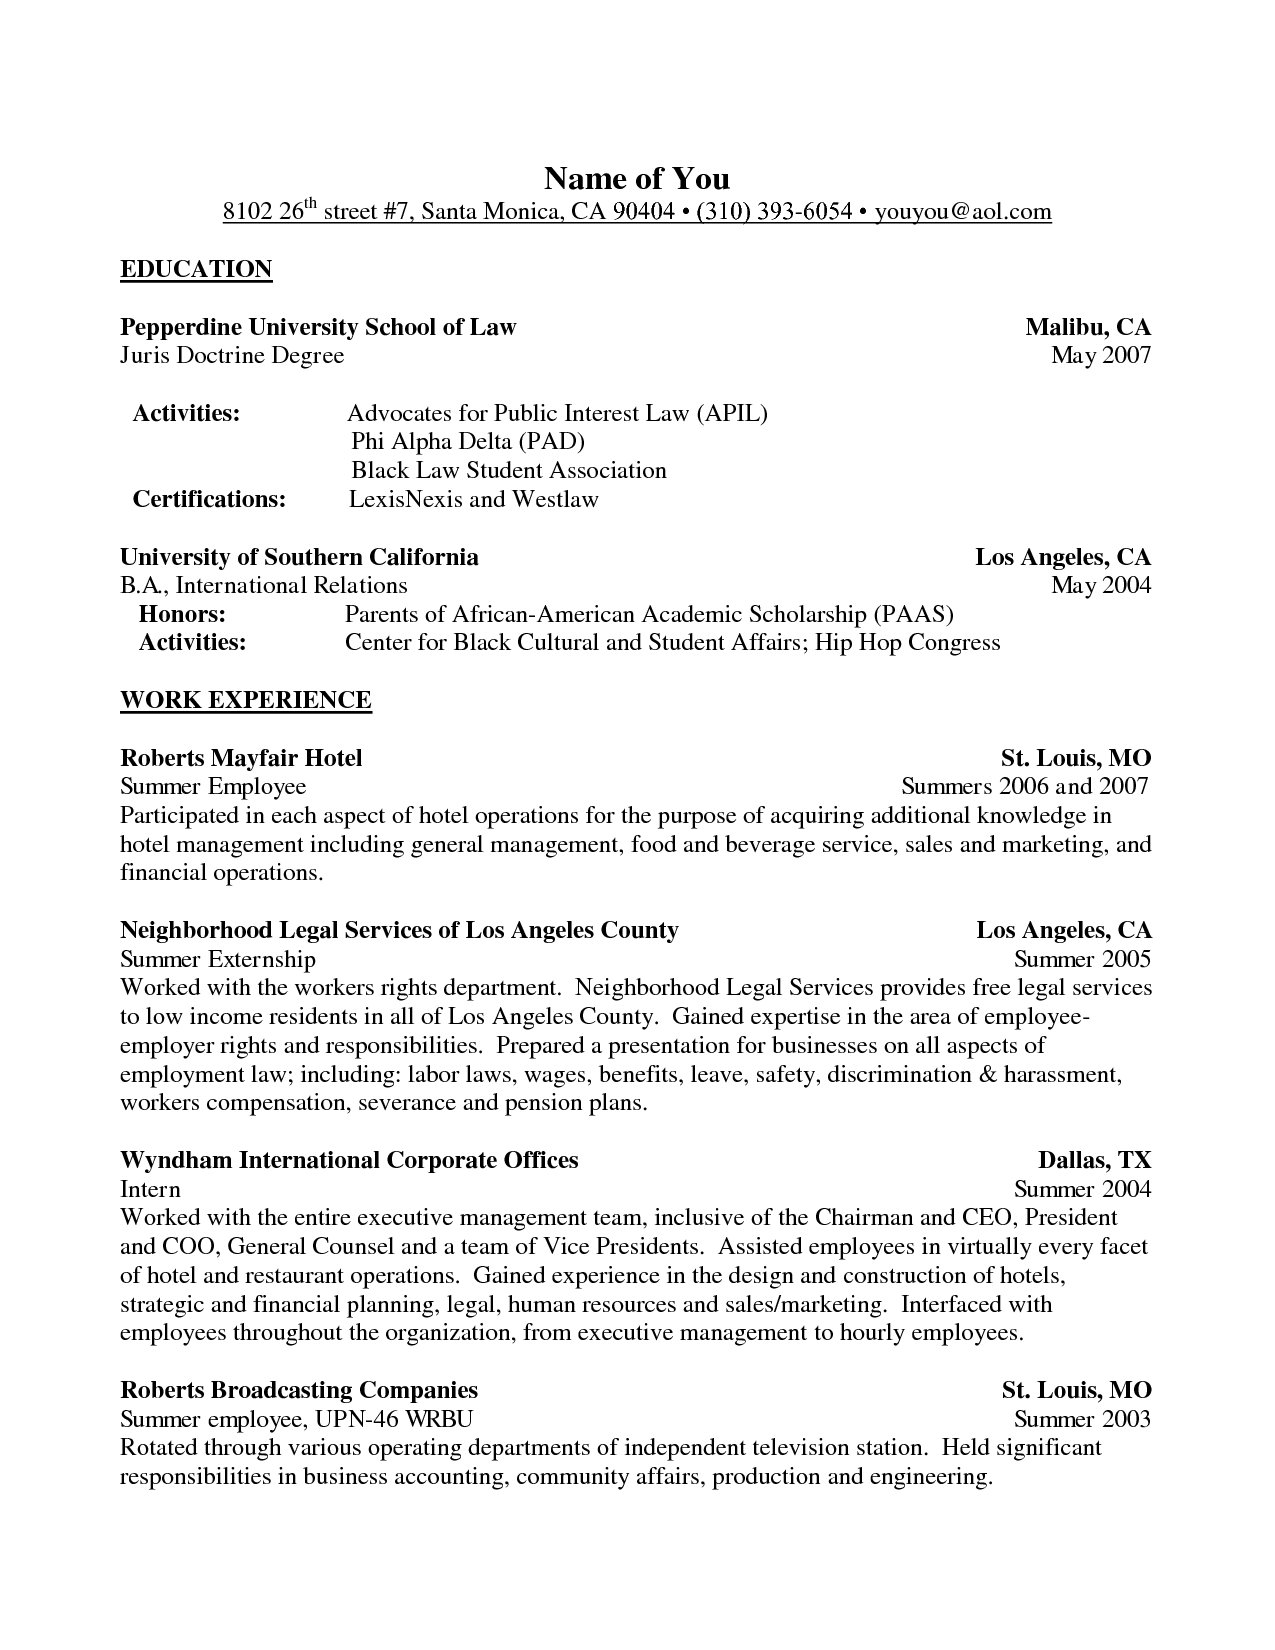 Interests On Resume Captivating Interests In Resume For Freshers  Specialist's Opinion  Good Place .